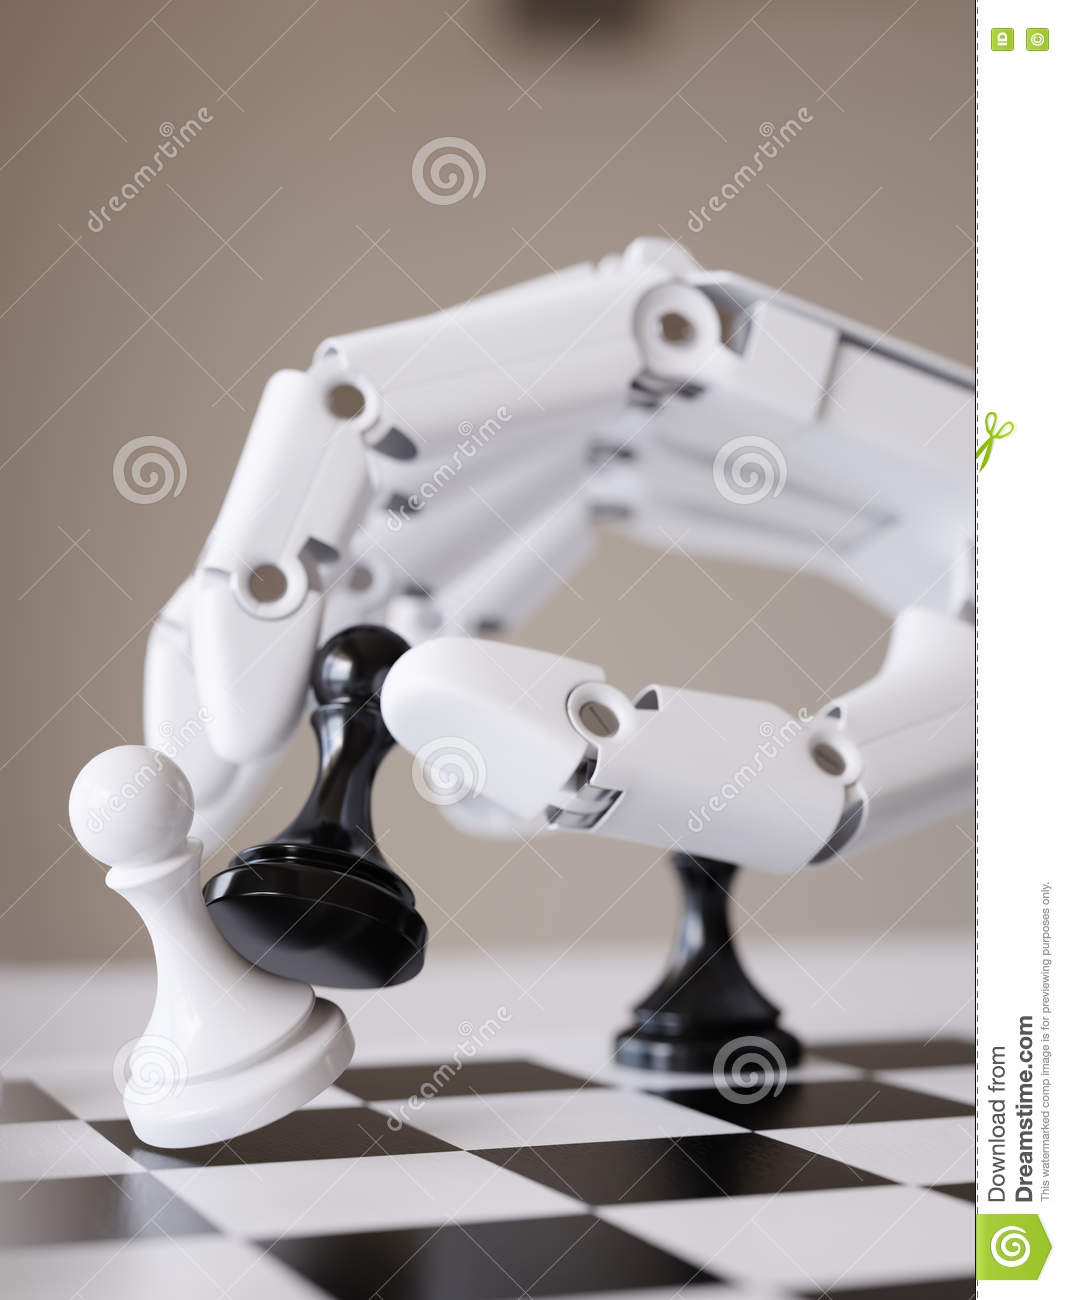 Robot Playing Chess 3d Illustration Artificial Intelligence Concept